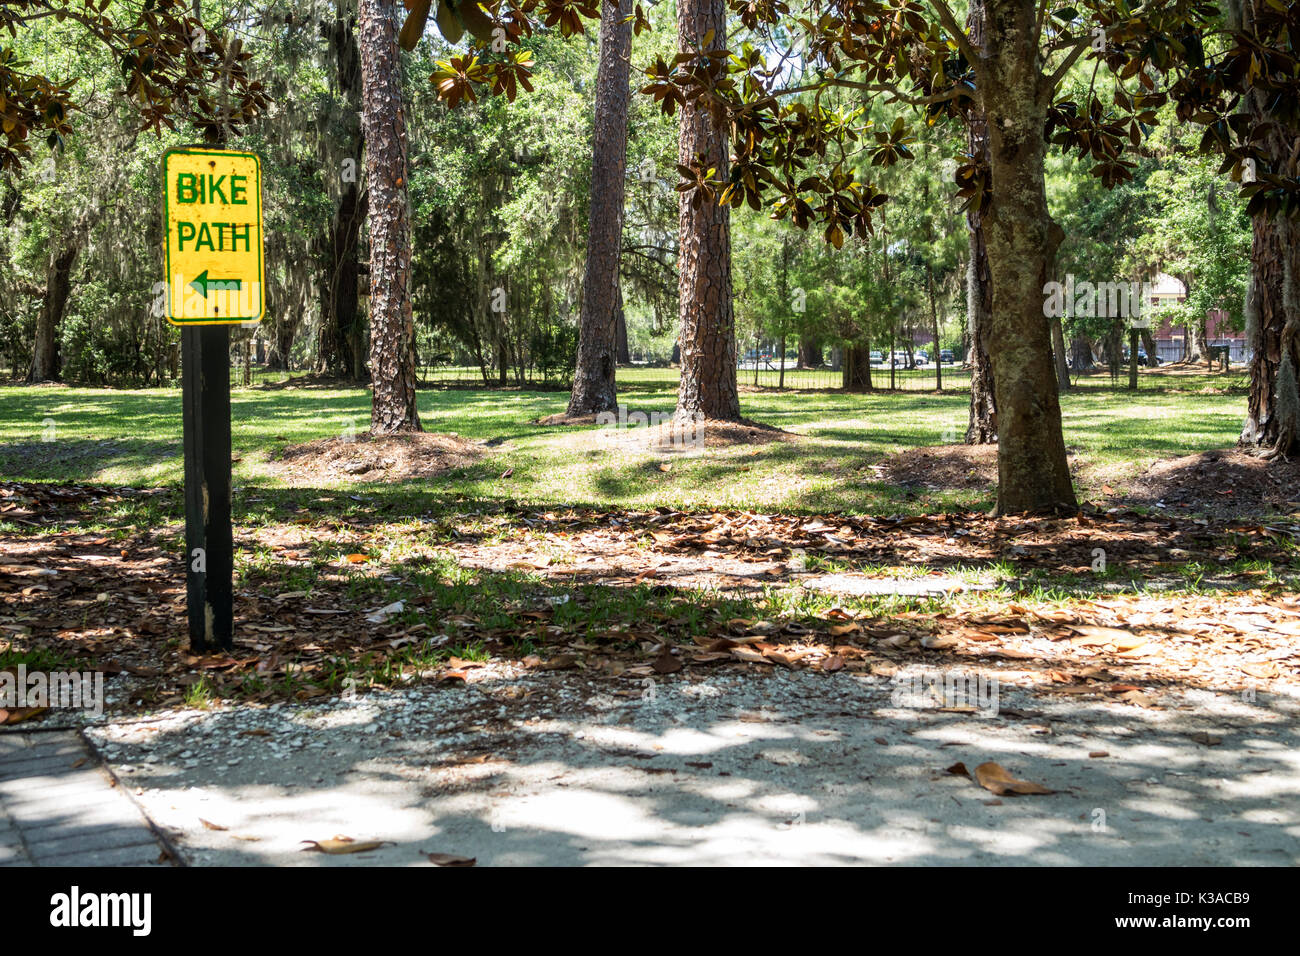 Bike Path Sign United States Stock Photos Bike Path Sign United